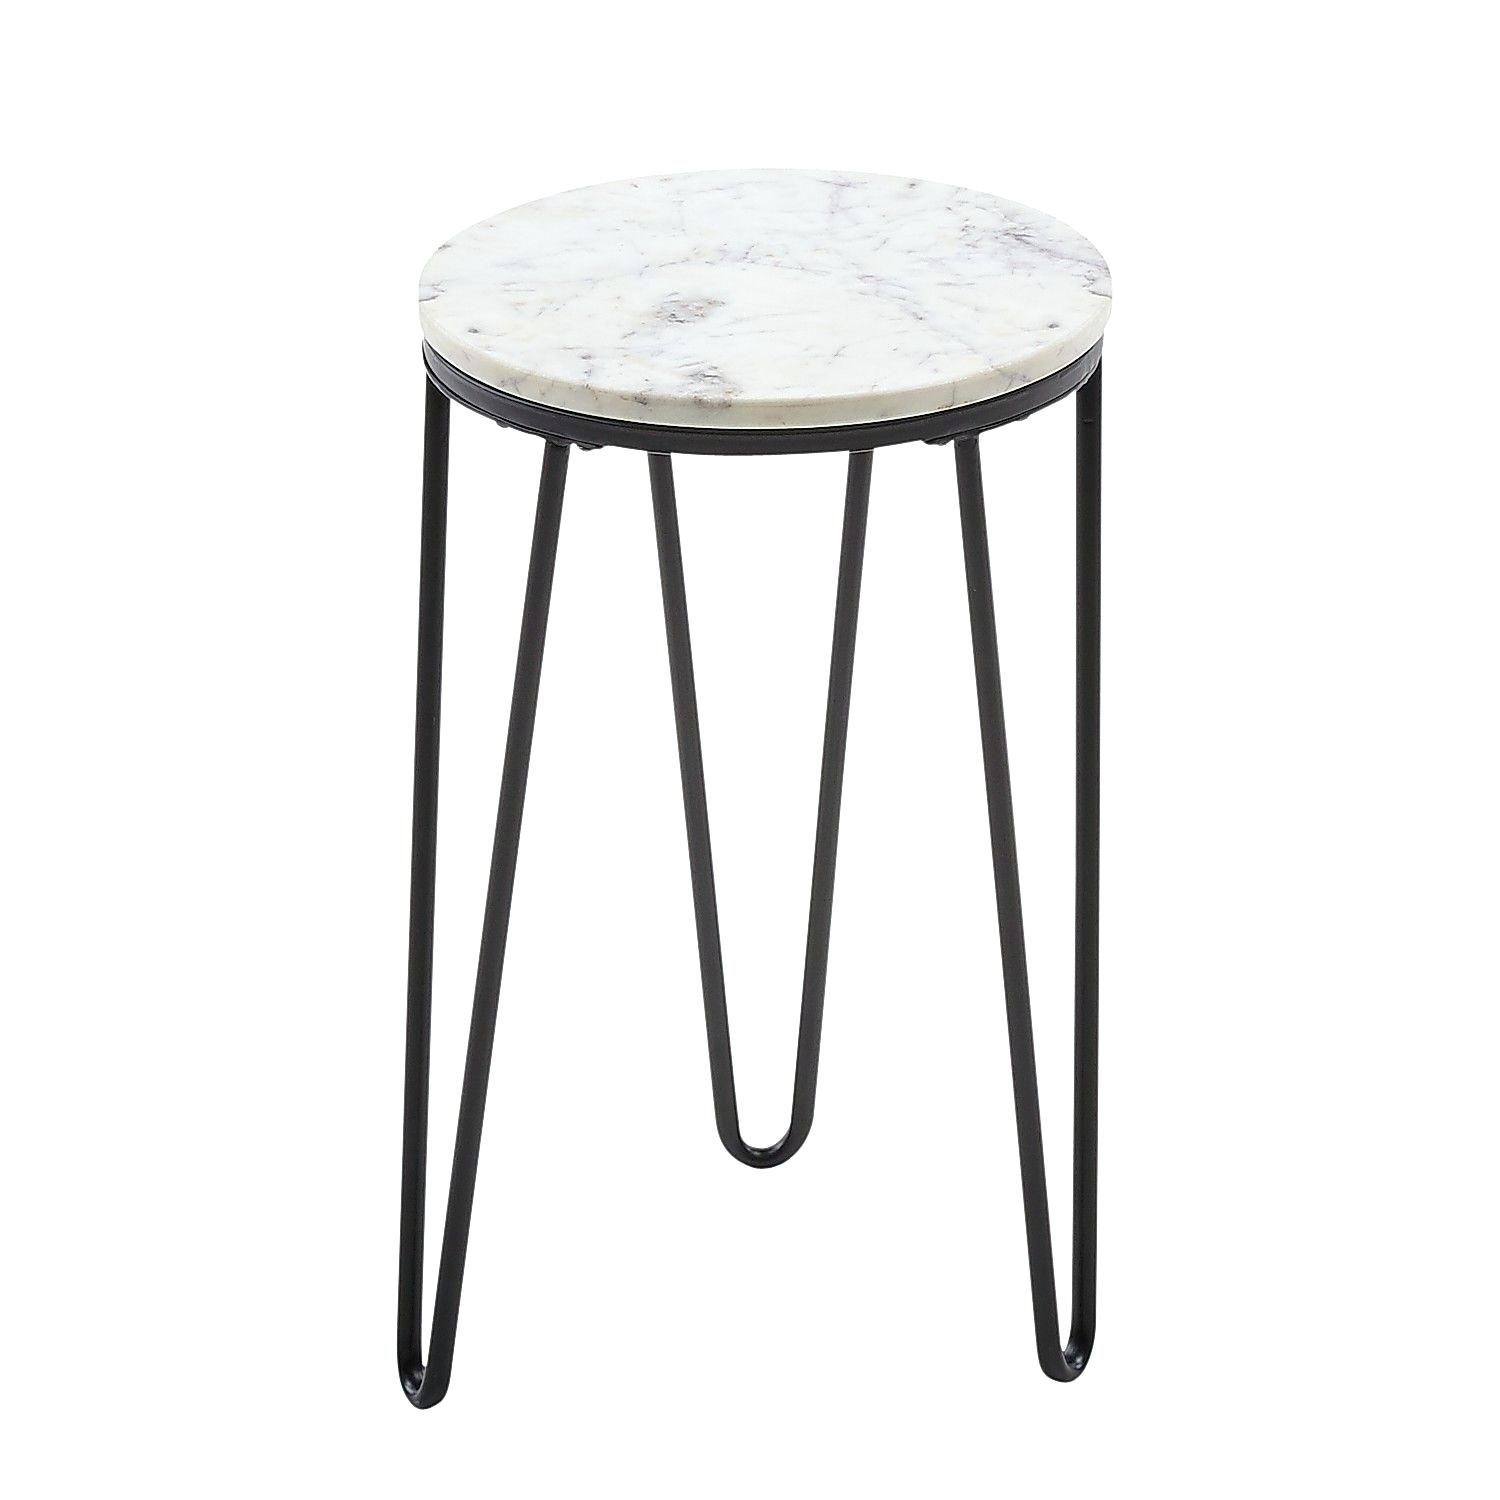 save this item pier accent tables mosaic table lavorochogan info kenzie mirrored nautical lamp base narrow coffee for small space marble topped pedestal side glass ikea reclaimed